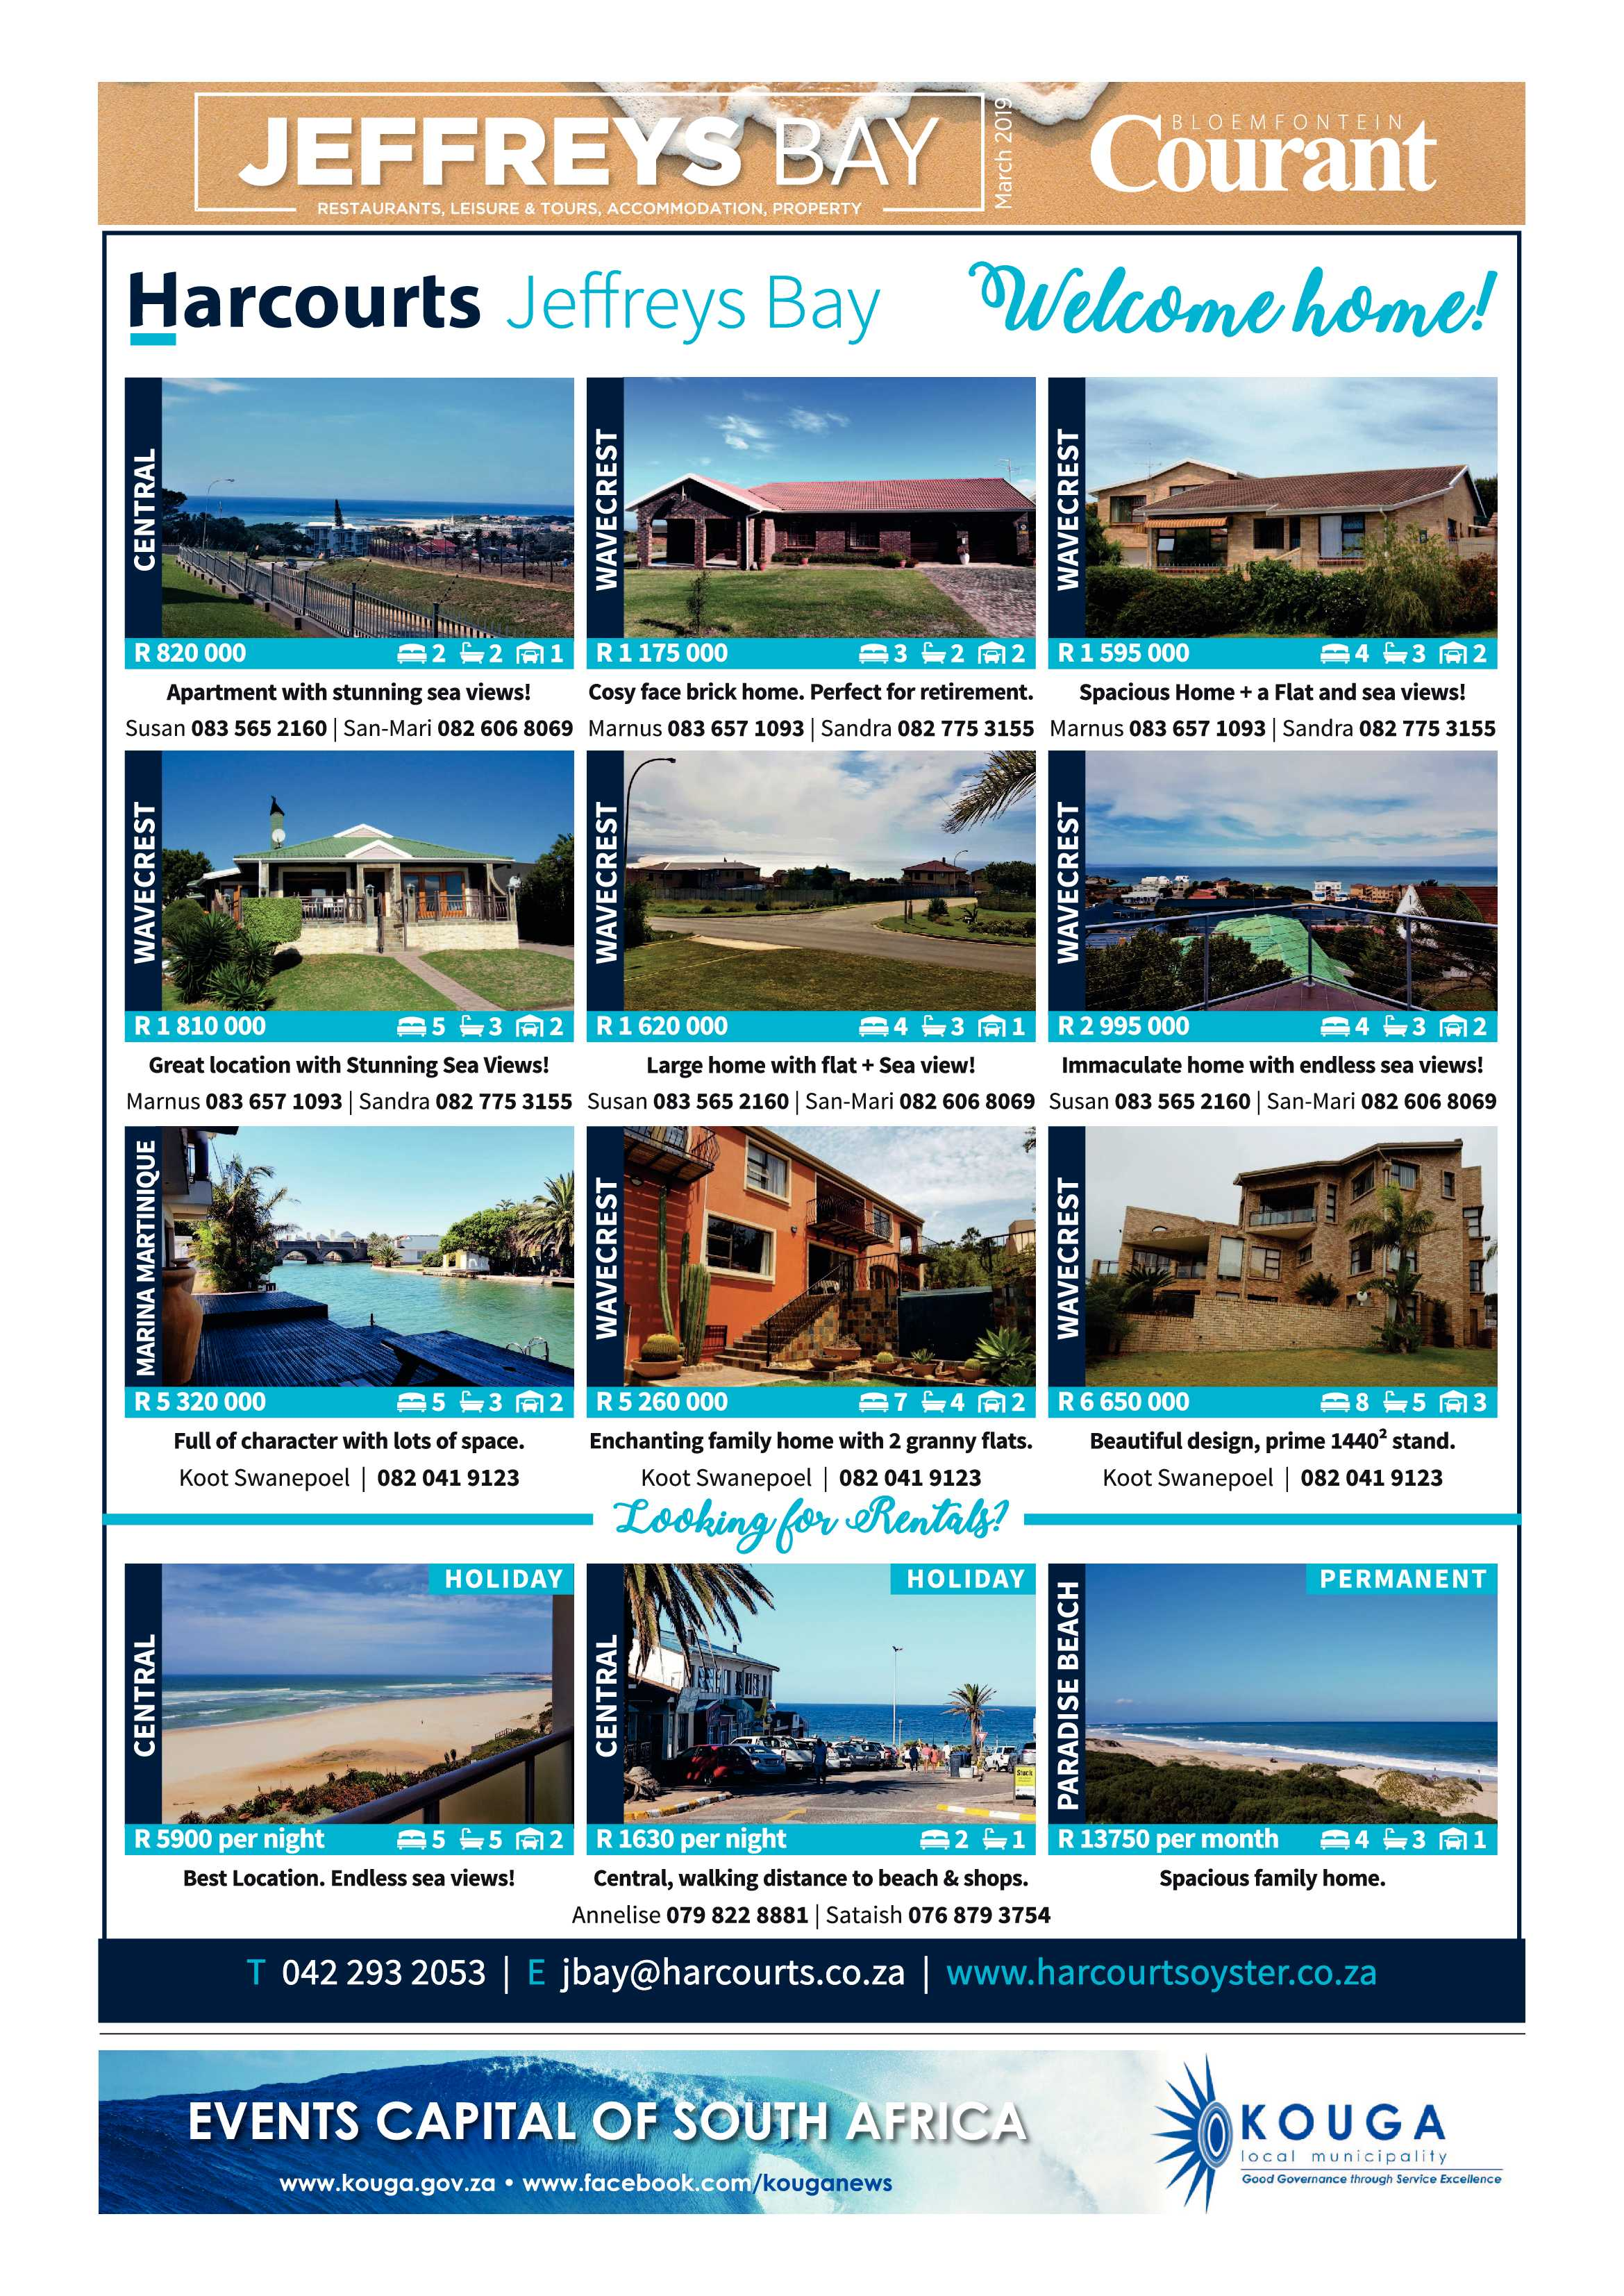 jeffreys-bay-courant-feature-28-march-2019-epapers-page-16